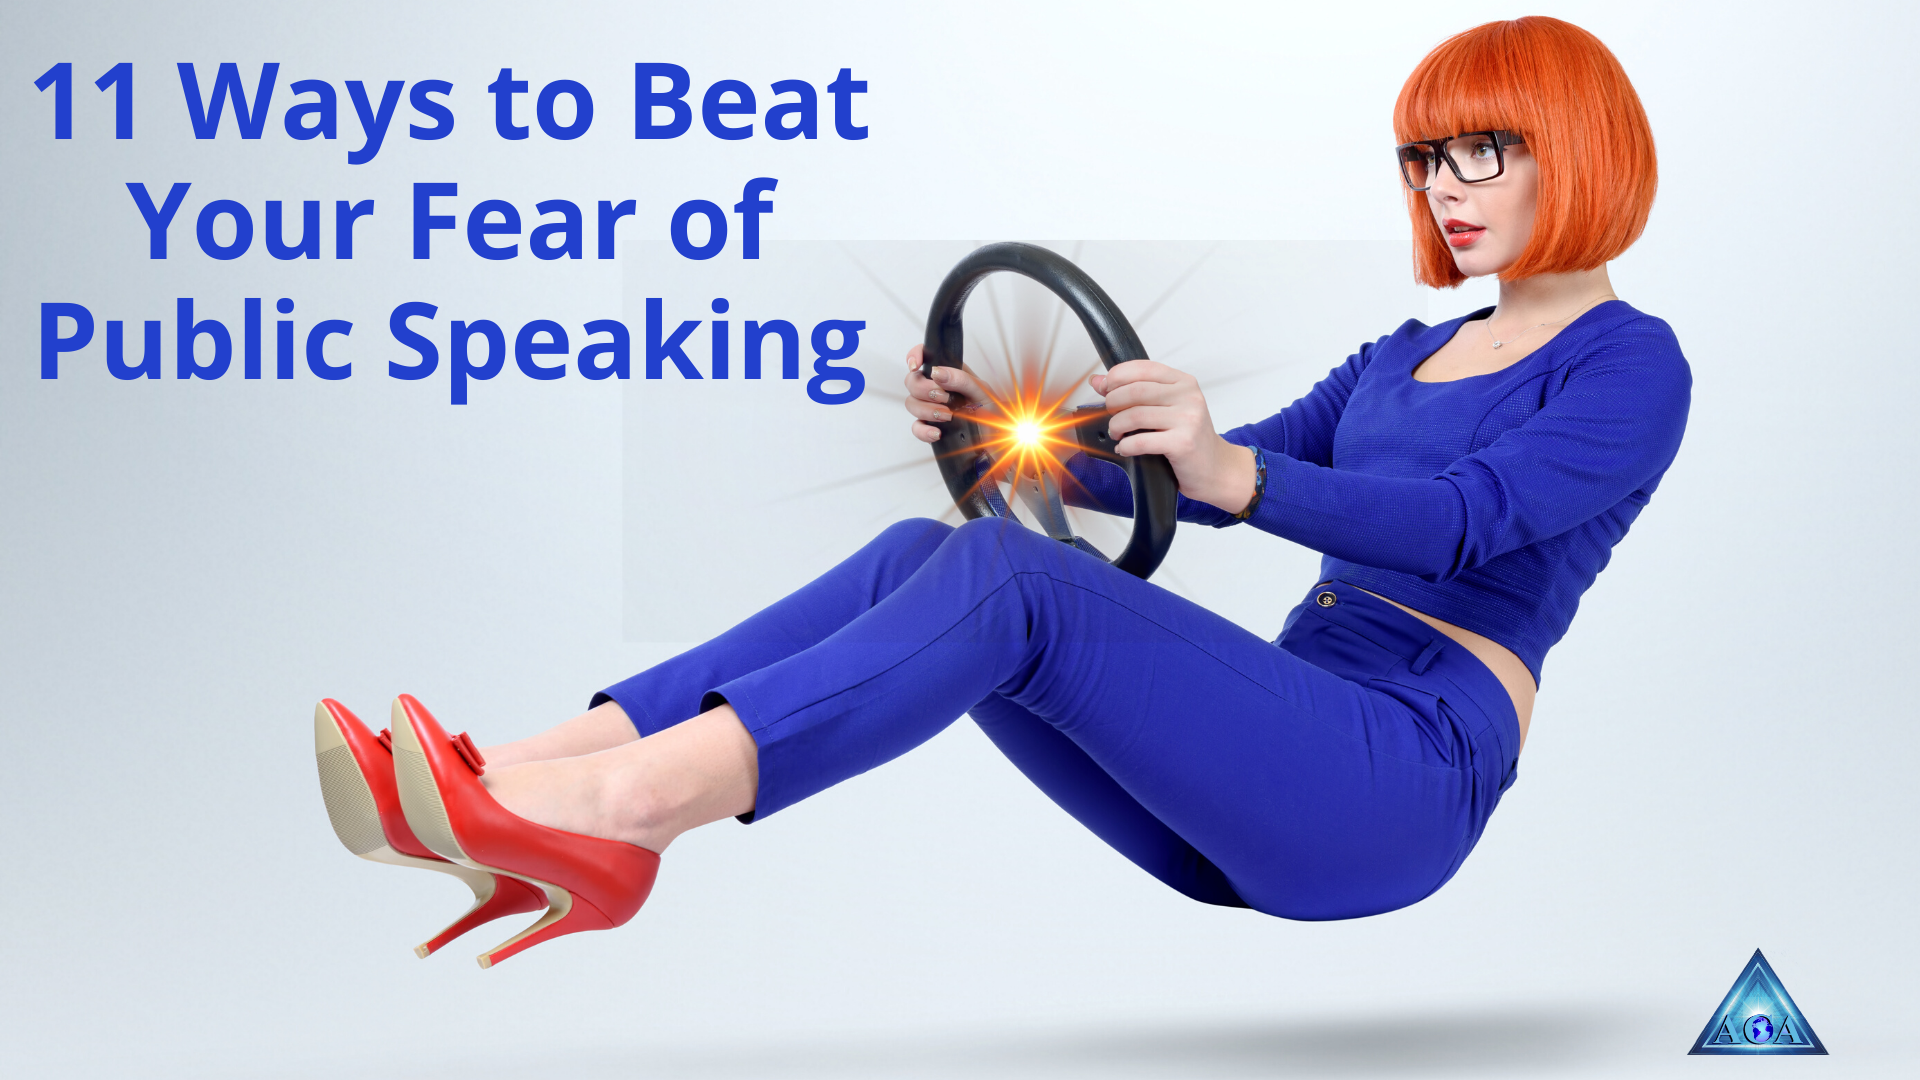 11 Ways to Beat Your Fear of Public Speaking